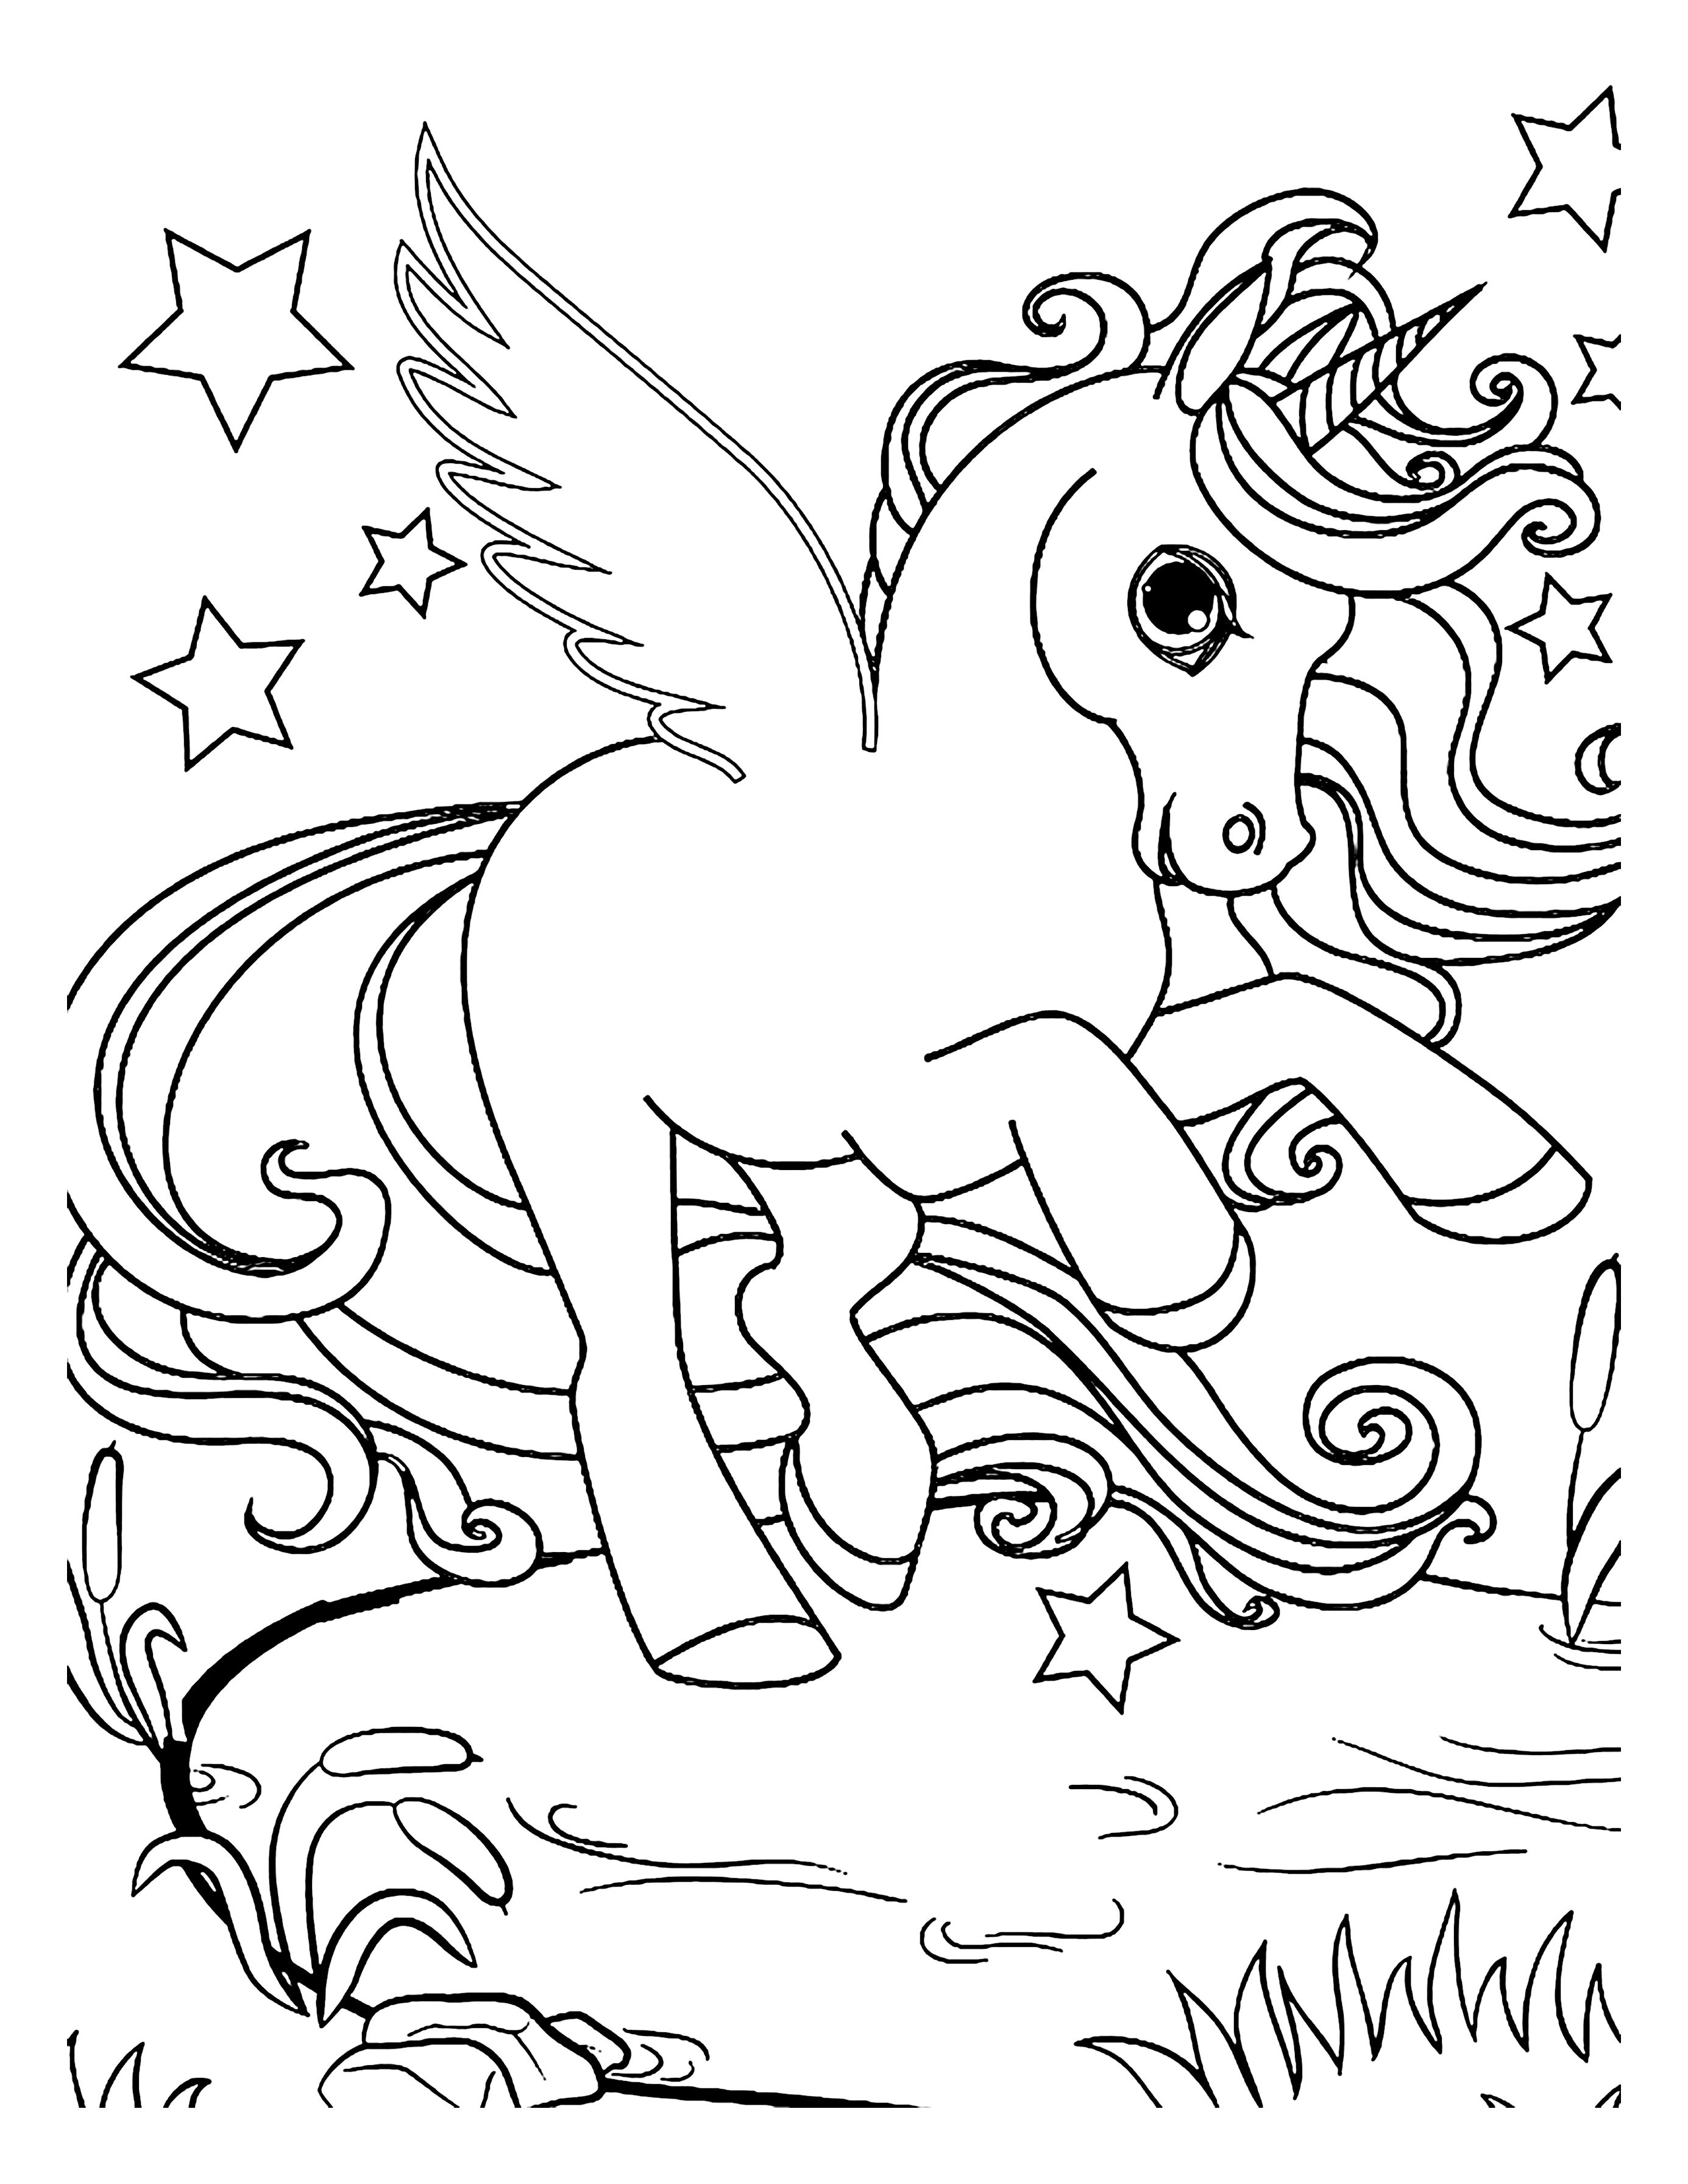 20+ Unicorn Coloring Pages For Kids  Unicorn coloring pages